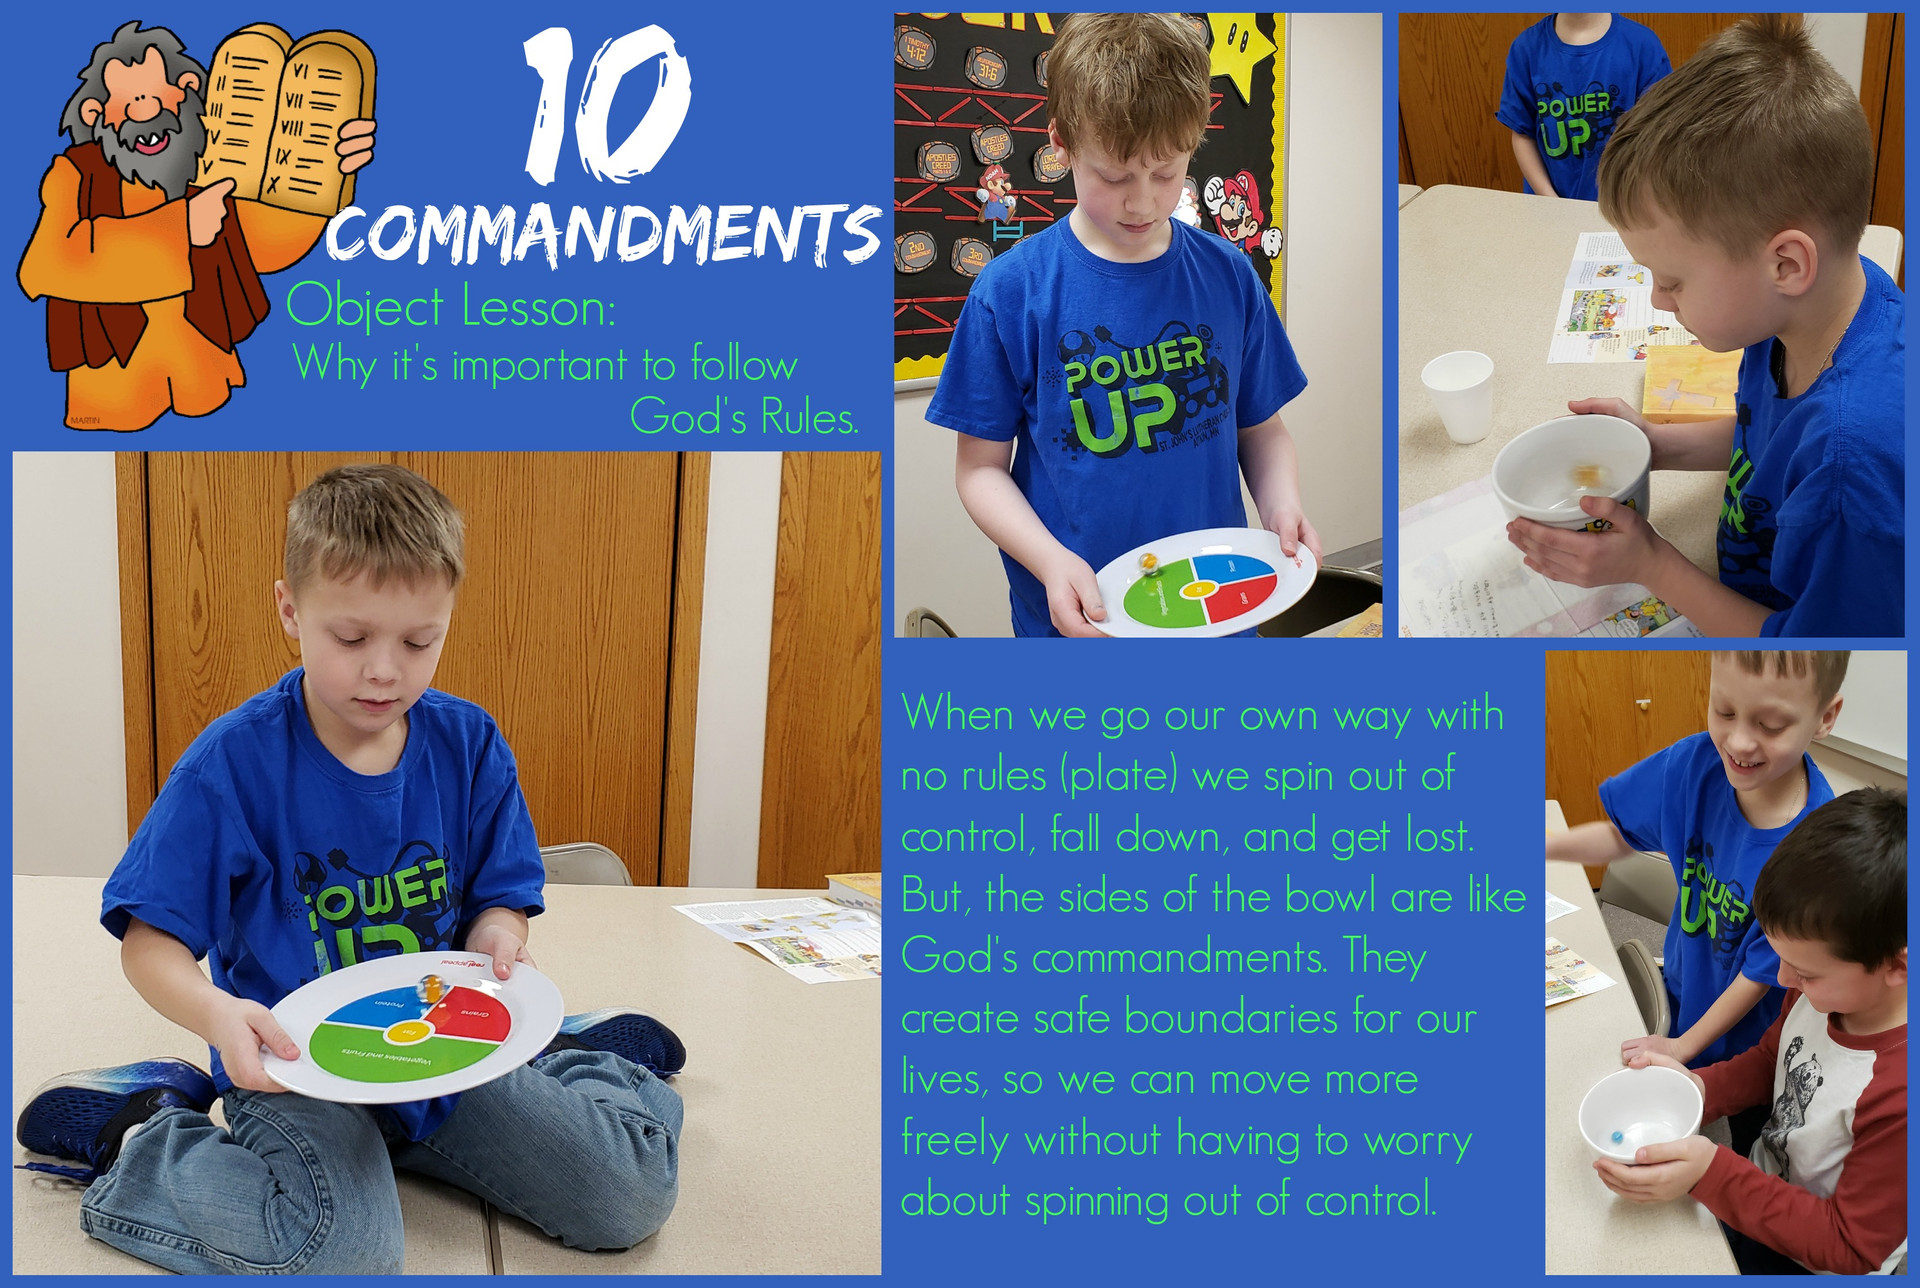 10 Commandments Object Lesson